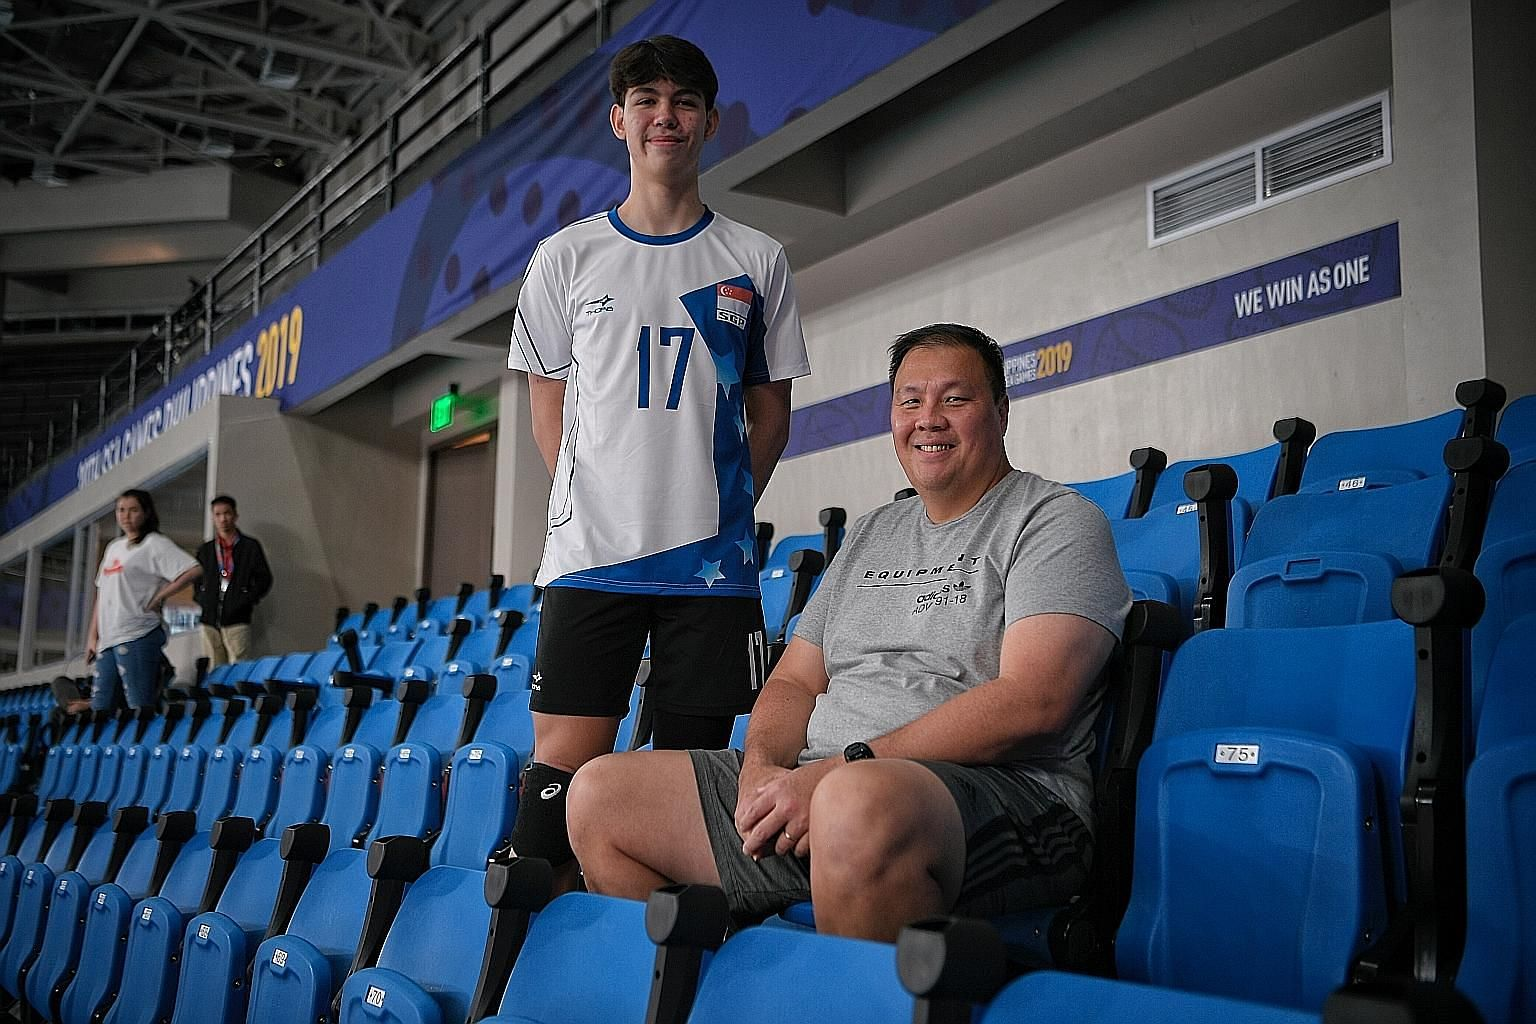 James Wong, who won the discus gold for nine straight SEA Games, and his son Jordan, 16, who is representing Singapore in volleyball in the Philippines.